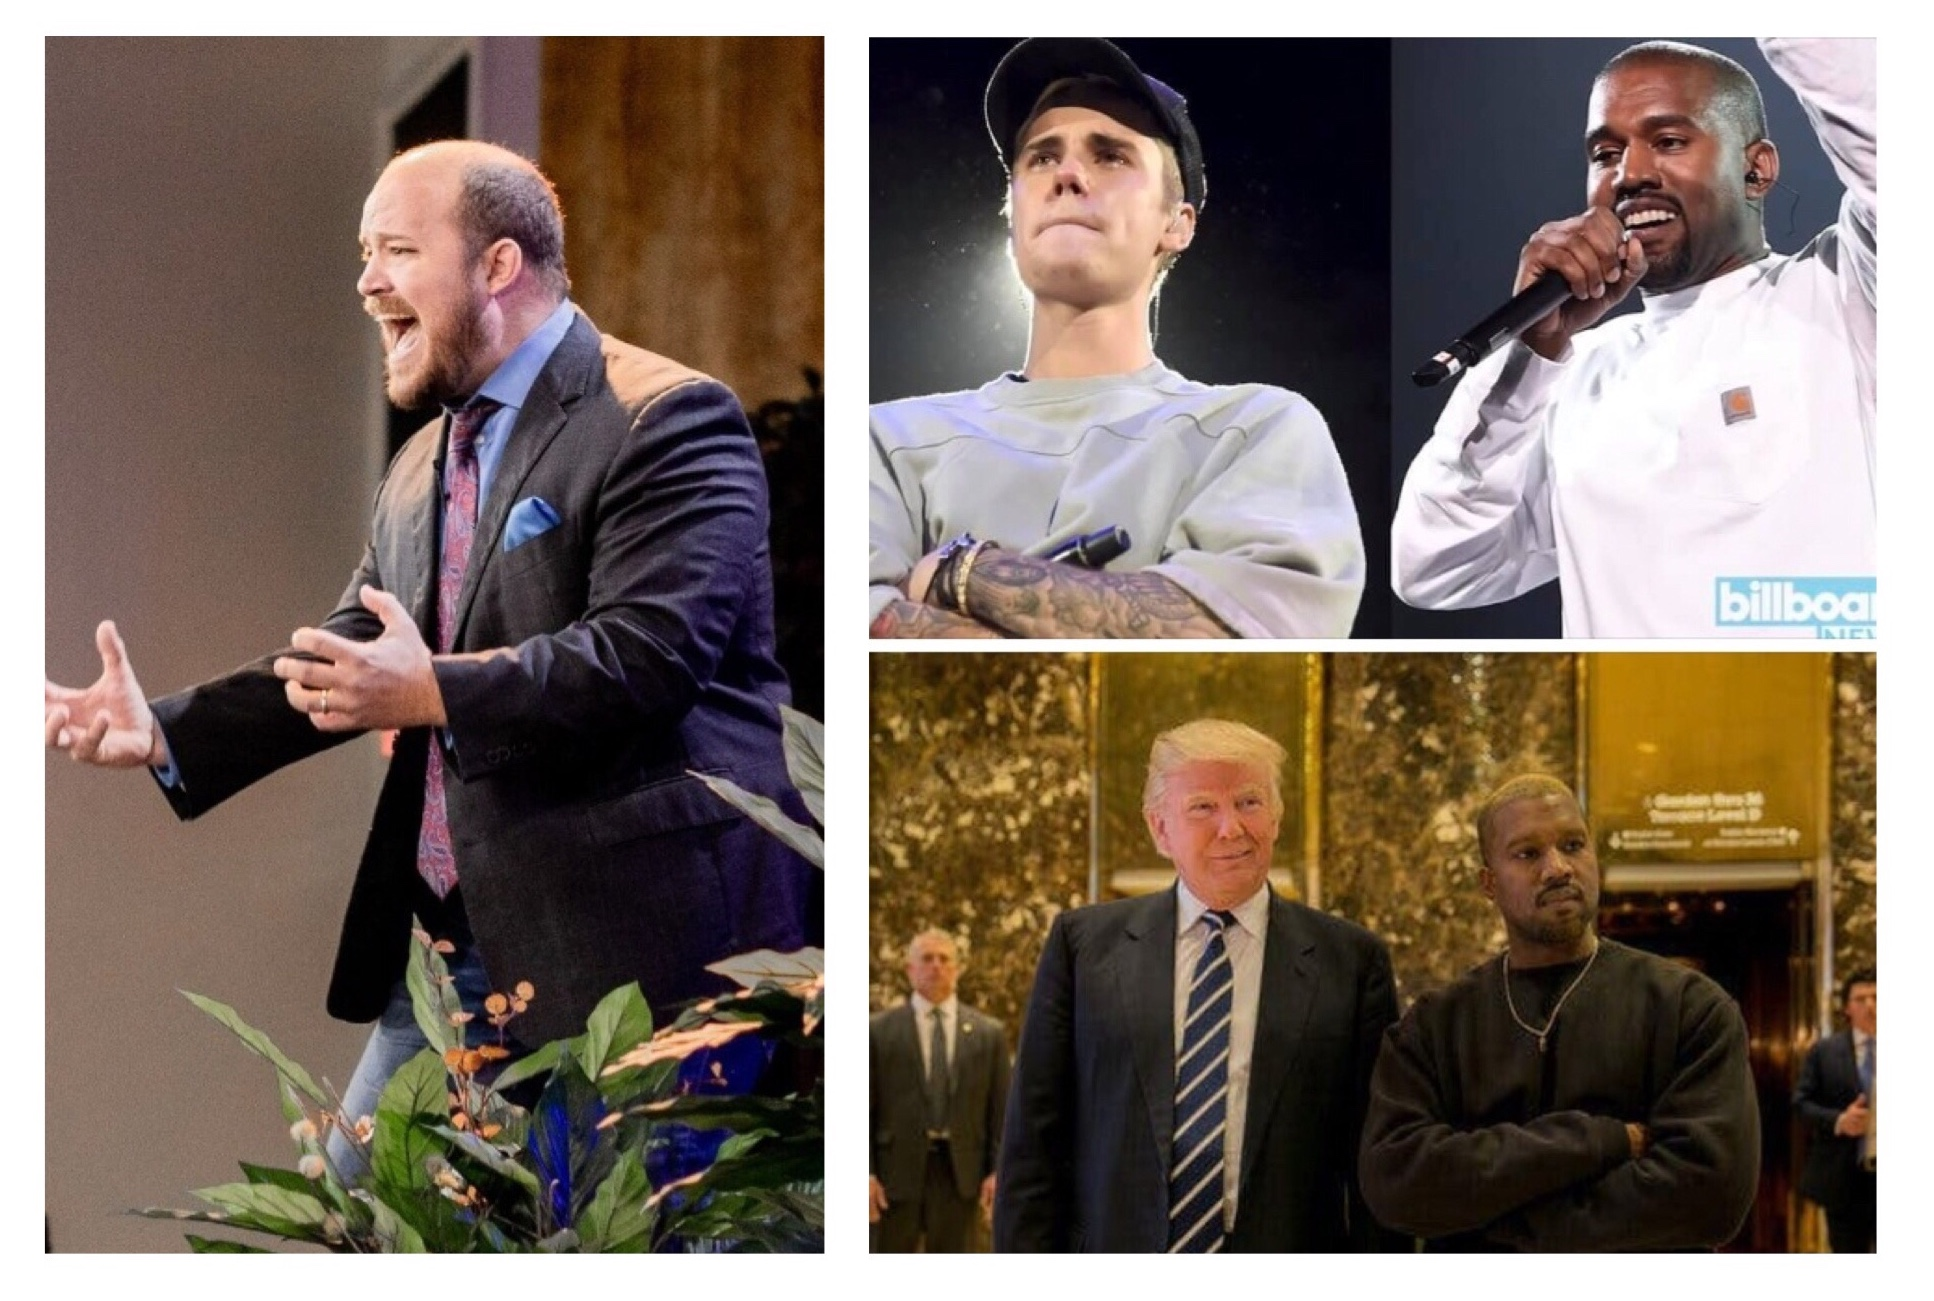 """ Meet Donald Trump, Justin Bieber, and Kanye West. Three men anointed by God Himself that are and will shape and shift.."" Says Jeremiah Johnson"